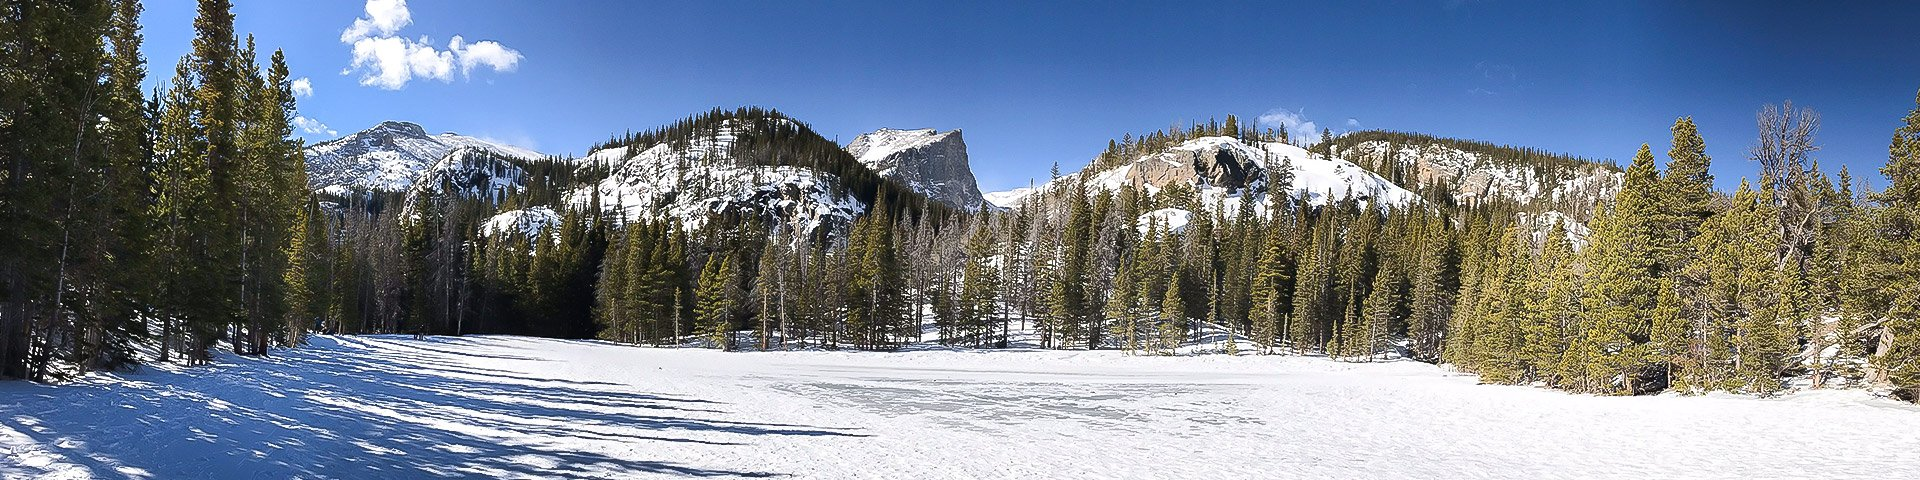 Panorama of Nymph Lake snowshoe trail in Rocky Mountain National Park, Colorado